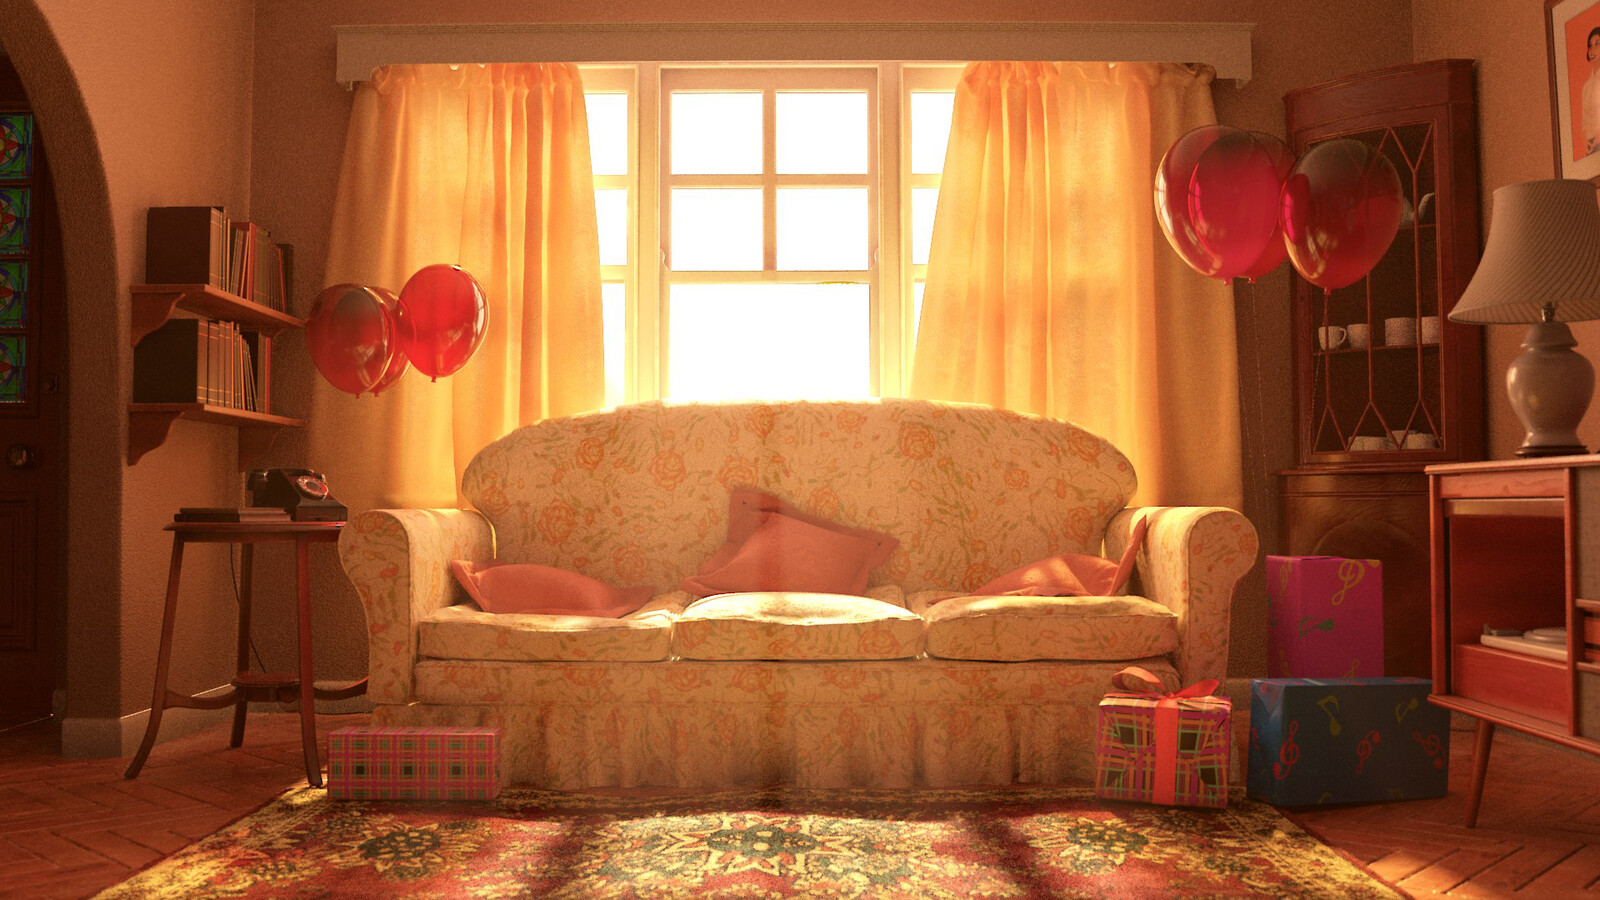 'Birthday': Marvelous Designer Sofa Asset